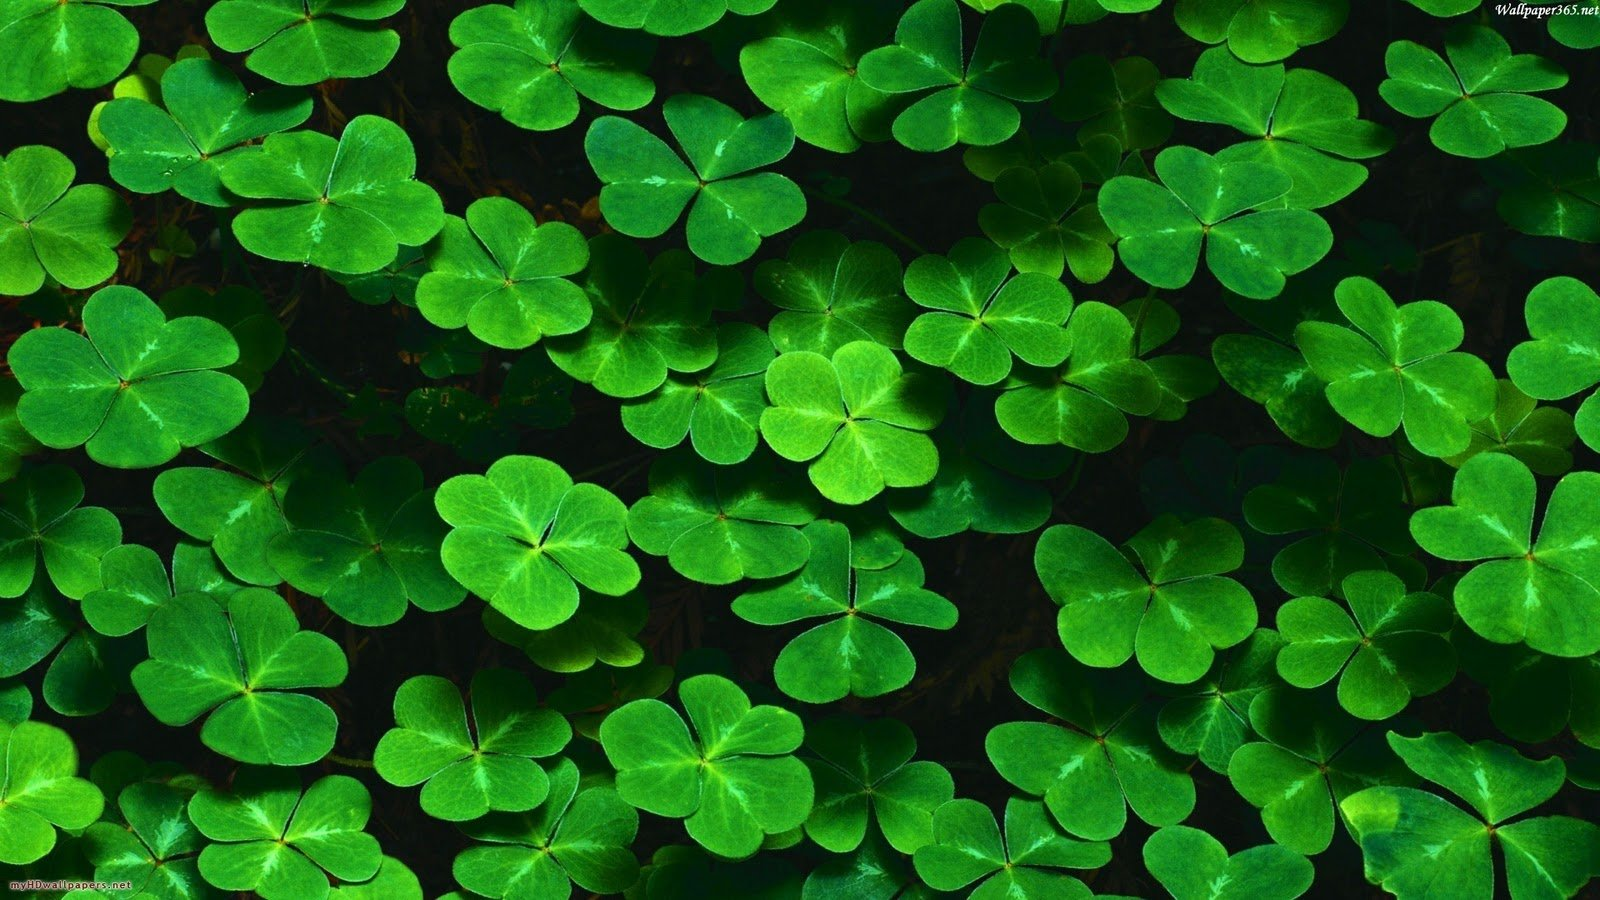 clover pictures Wallpaper Wallpapers Desktop Wallpaper HD 1600x900